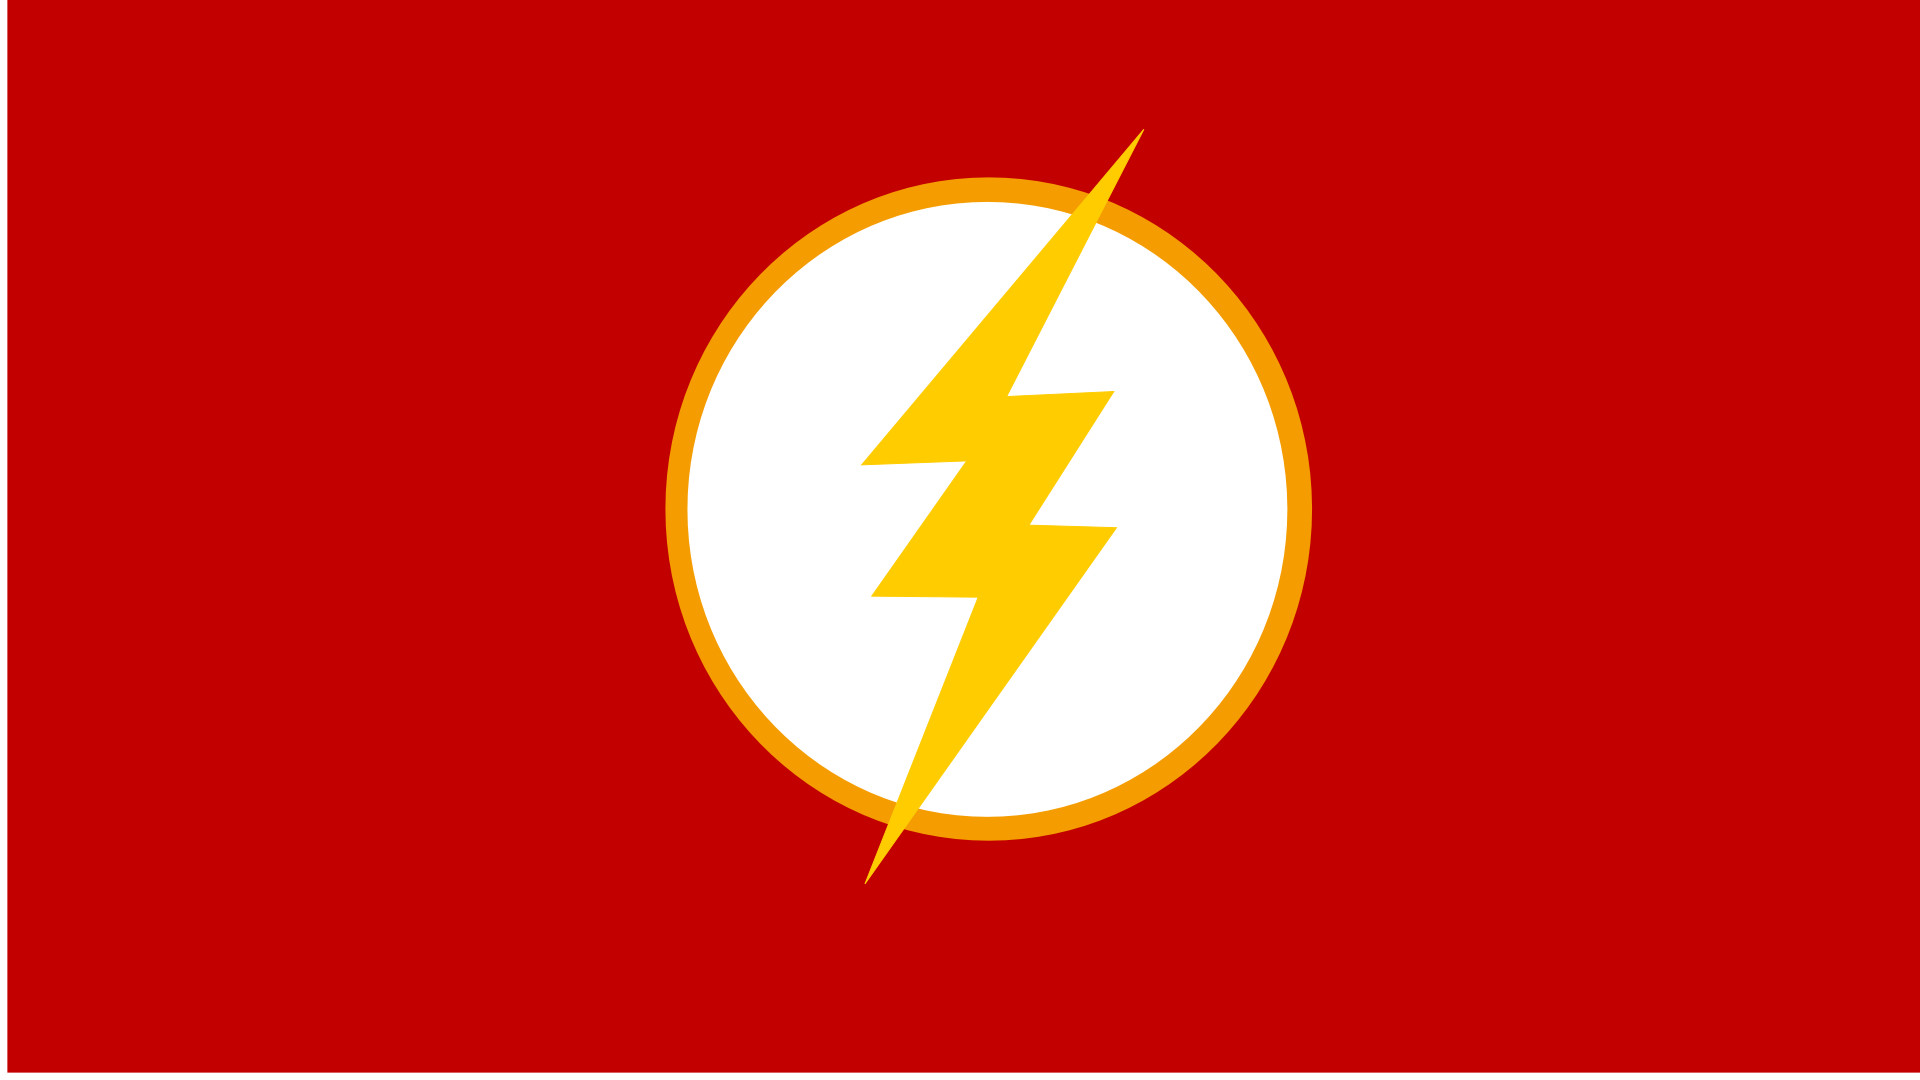 Most Viewed Symbol Wallpapers: Flash Symbol Wallpaper (66+ Images